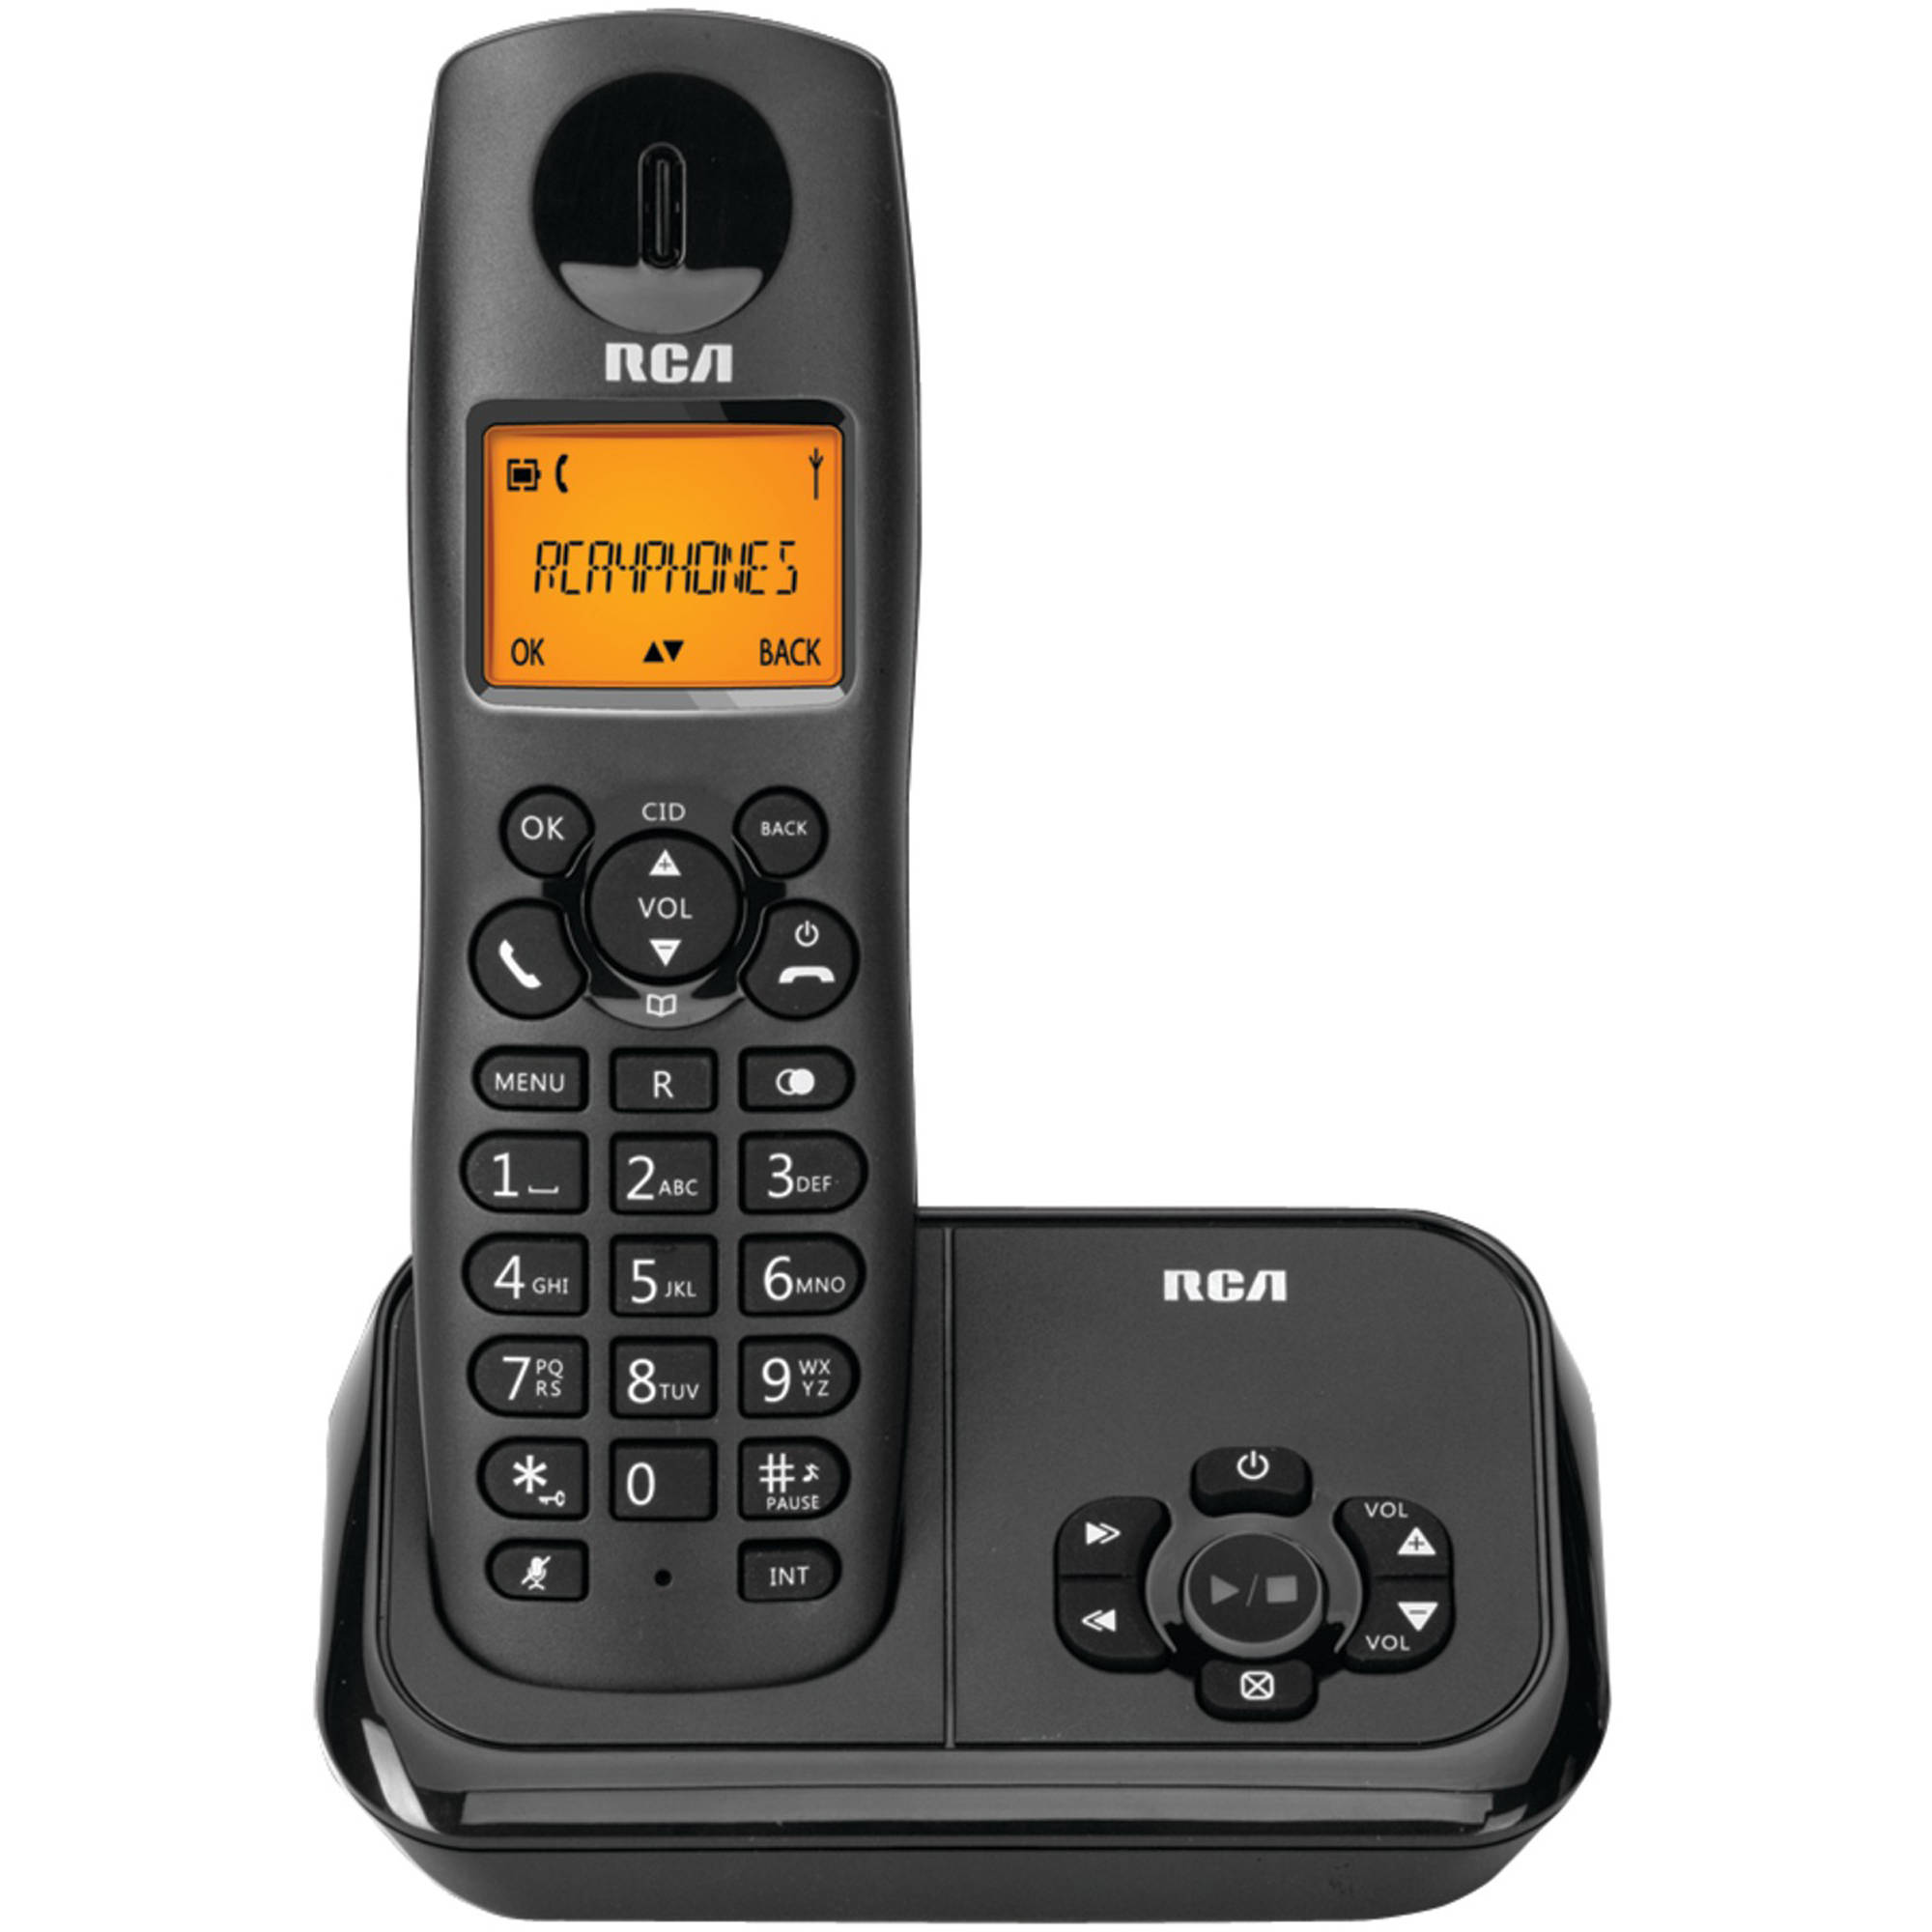 RCA 2162-1BKGA Element Series DECT 6.0 Cordless Phone with Caller ID and Digital Answering System 1-Handset System